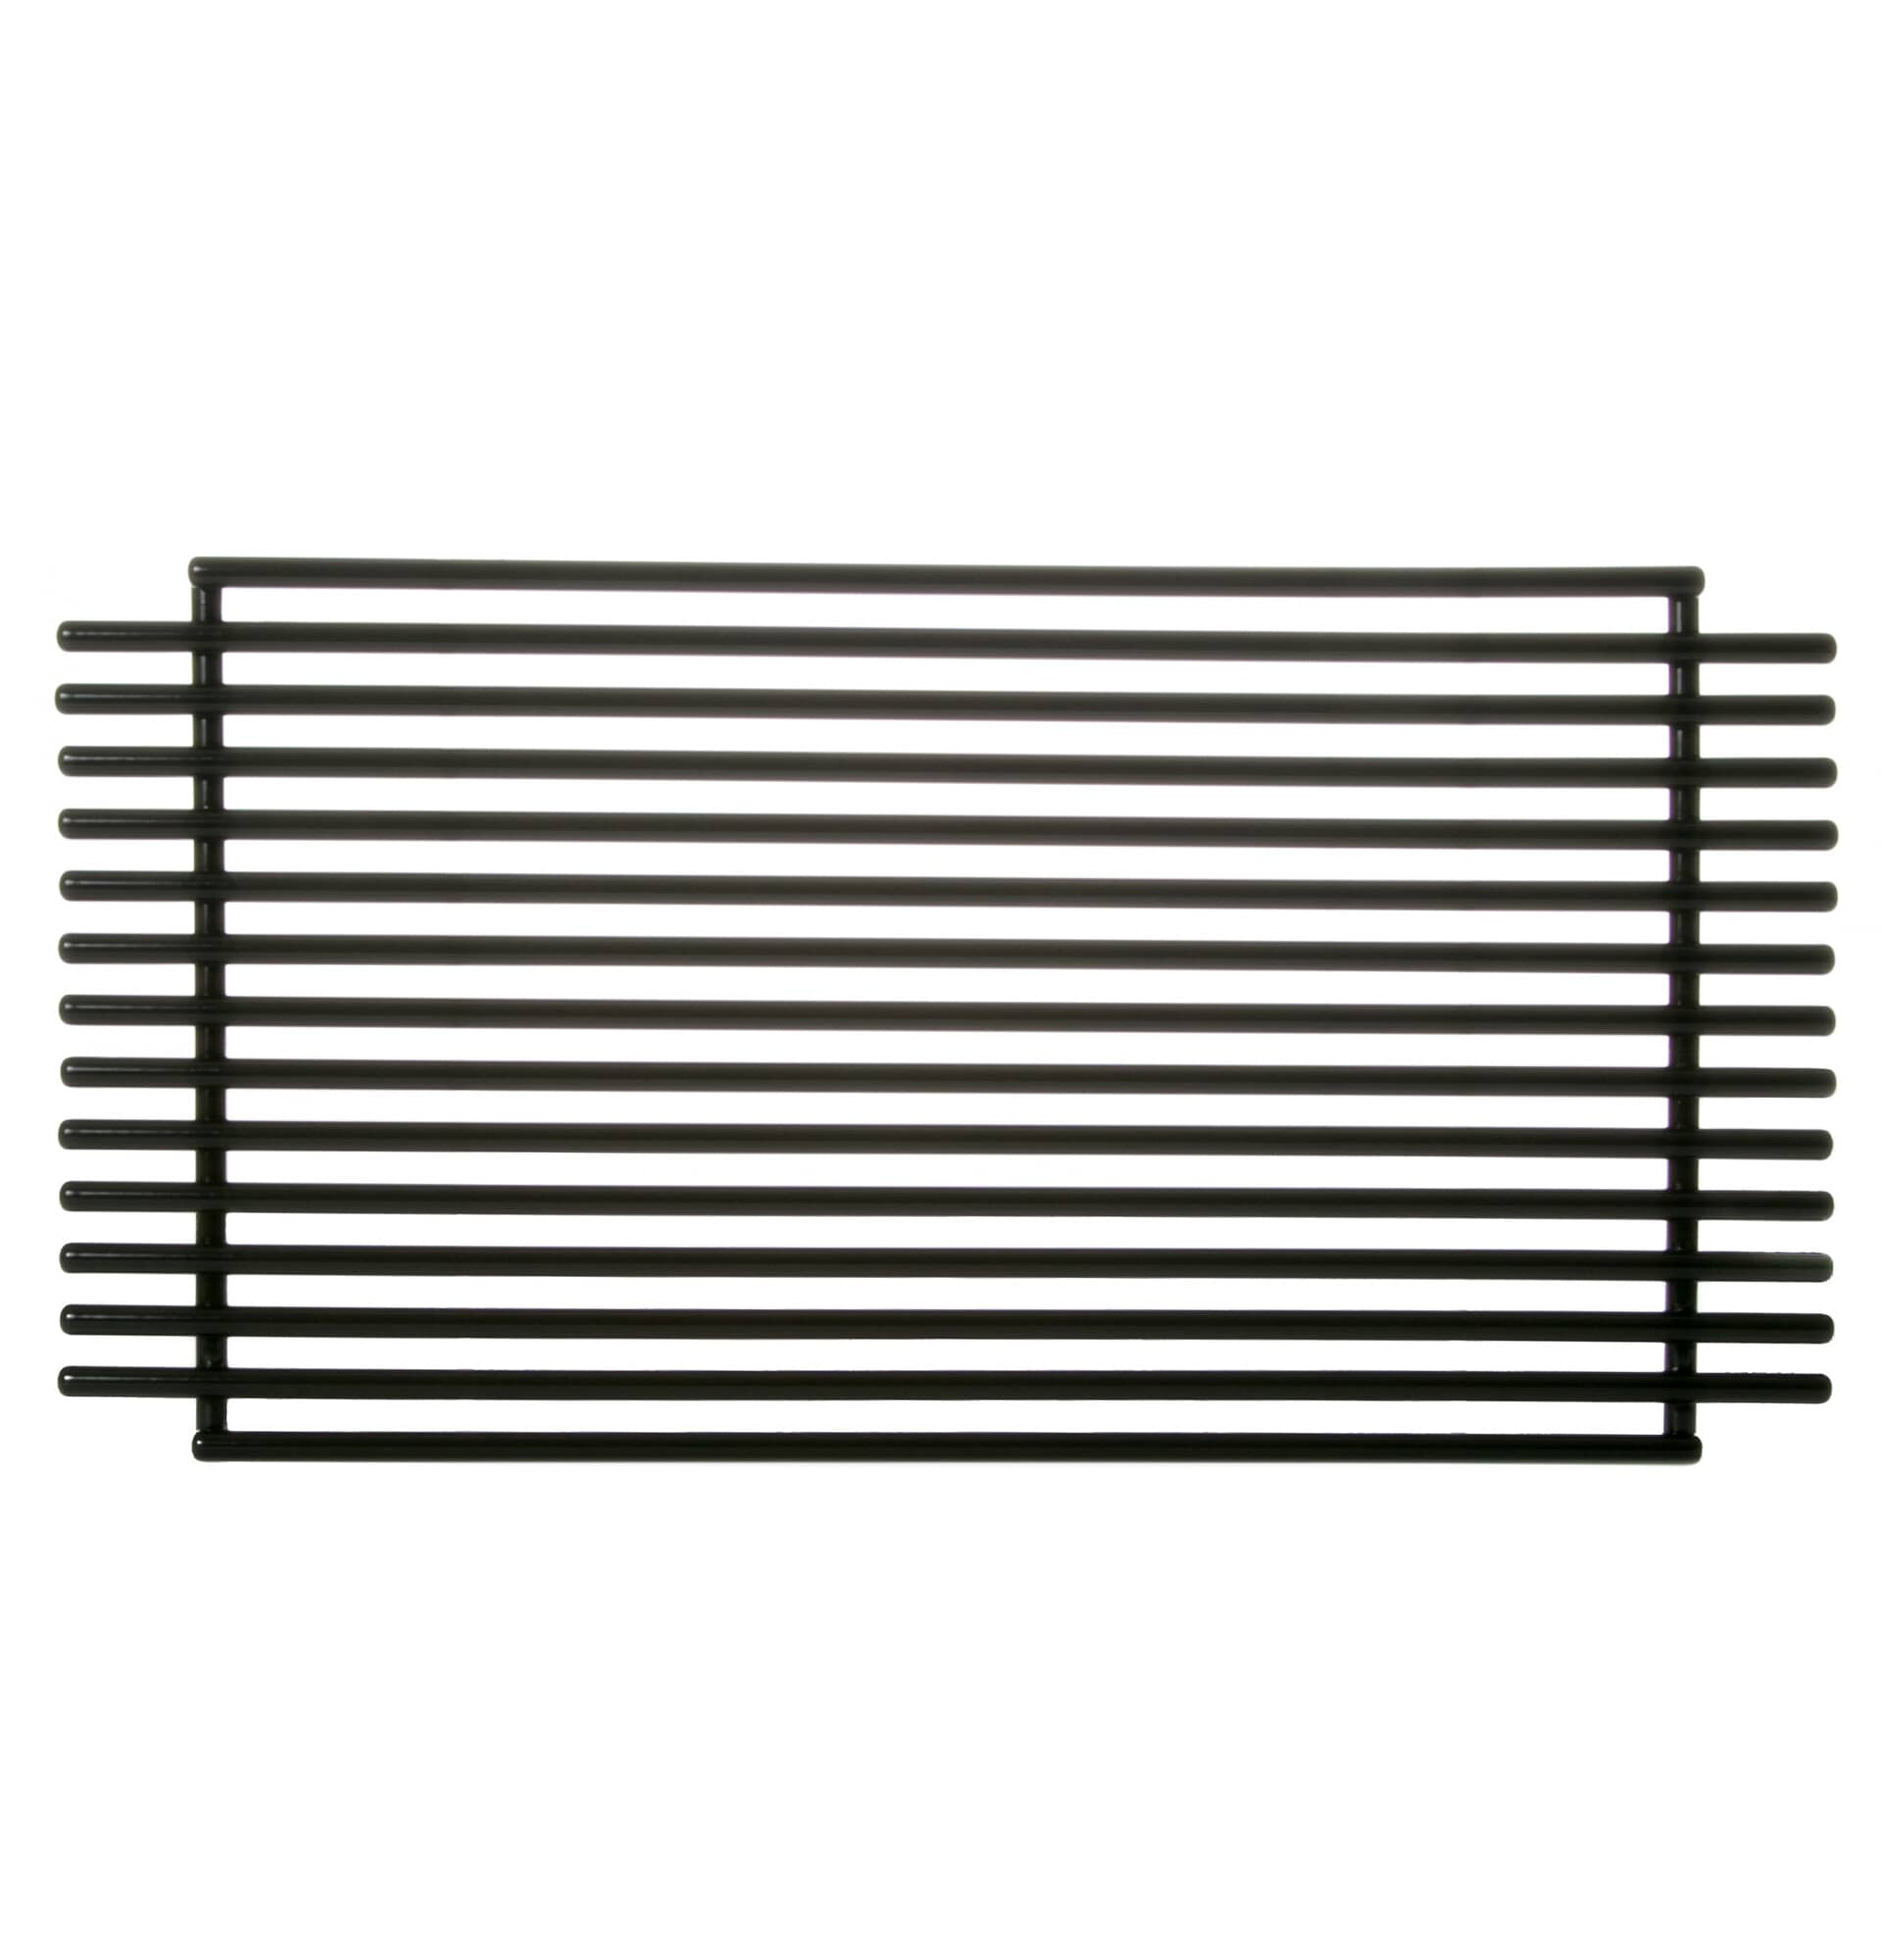 GE Appliance WB49X10013 GRILL RACK